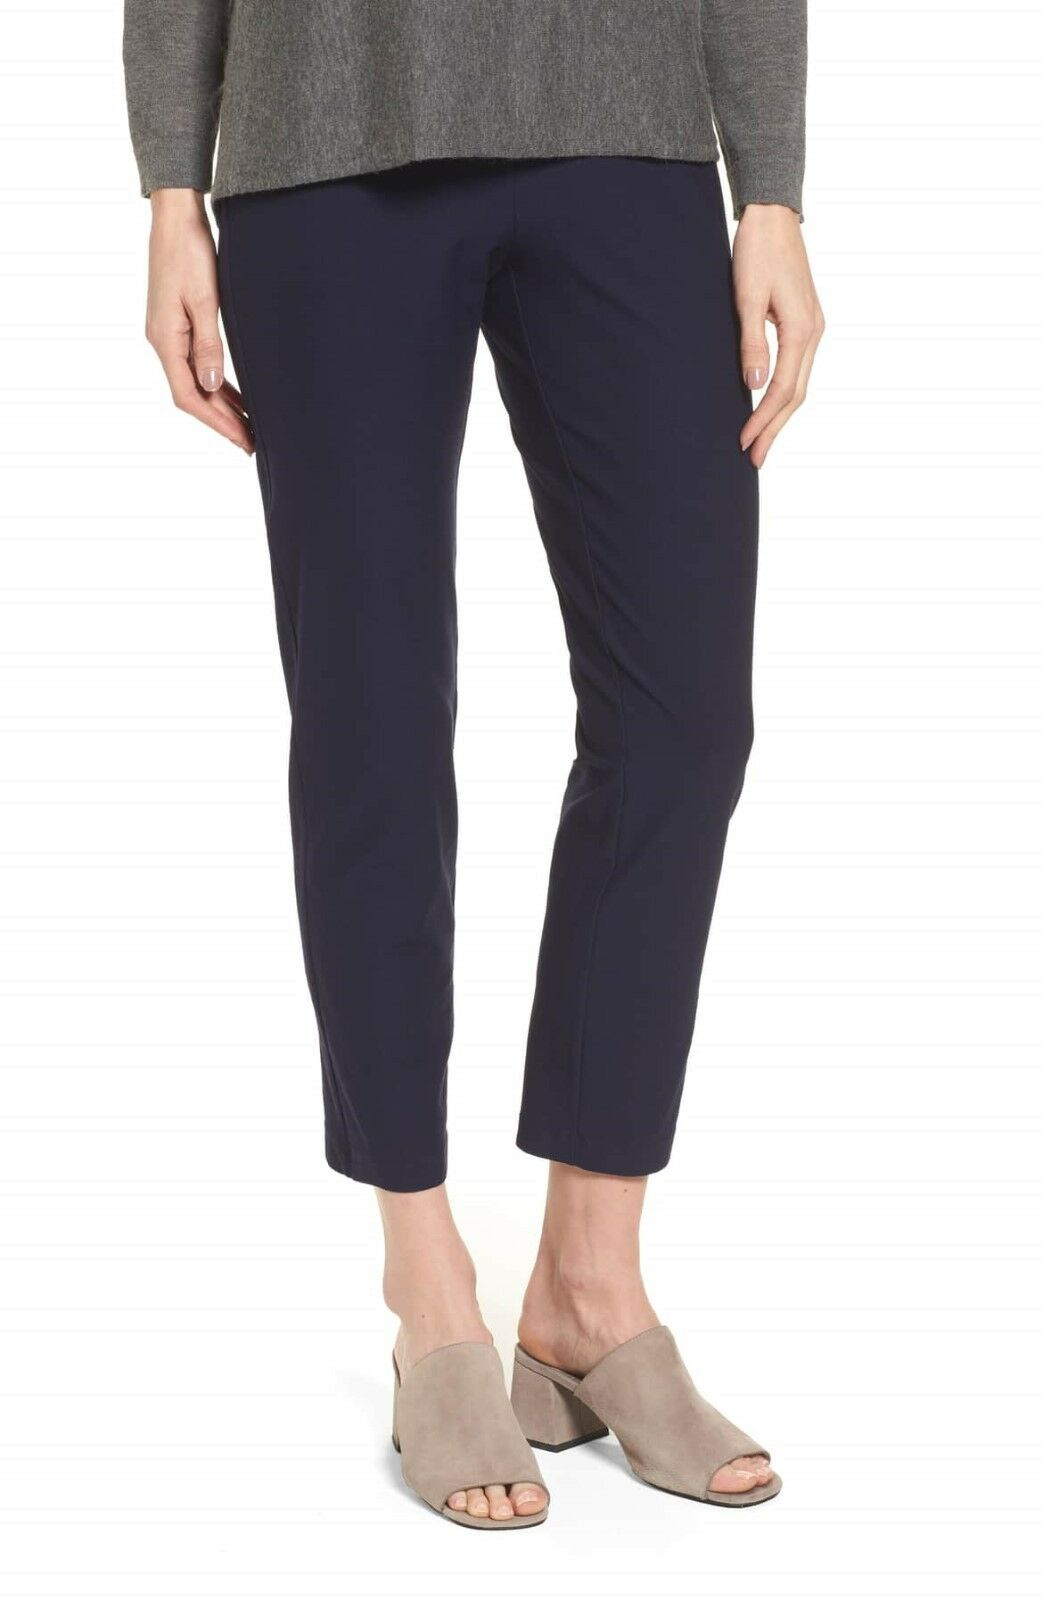 NWT EILEEN FISHER Crepe Knit Slim Ankle Pants in Midnight - Size L